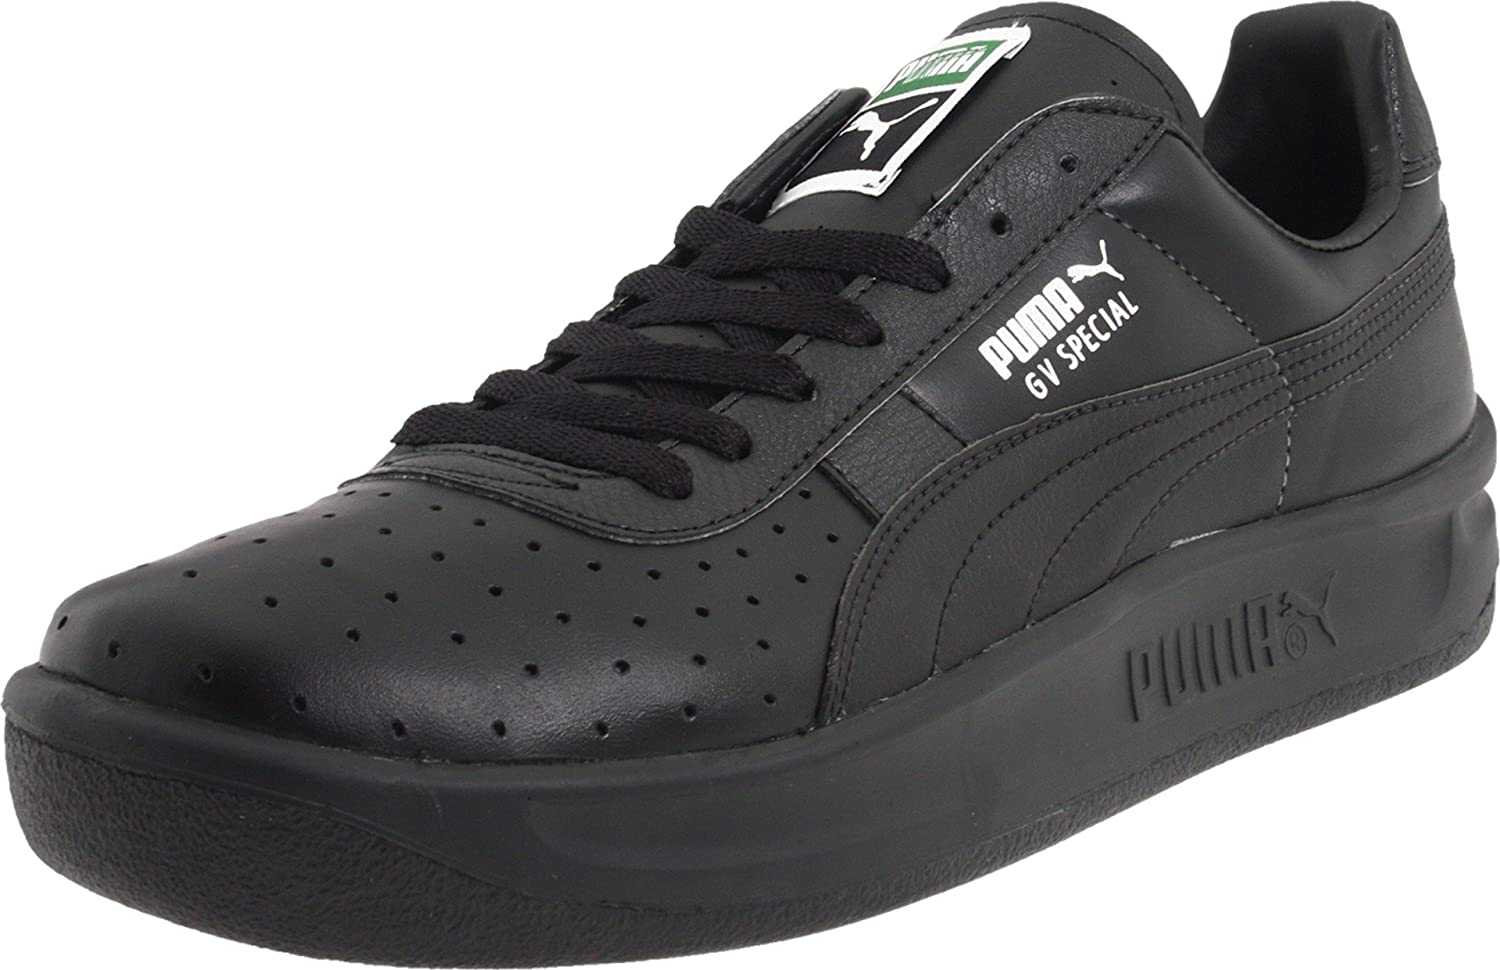 PUMA Men's GV Special Fashion Sneaker B0058XIOLG 9 D(M) US|Black/Black